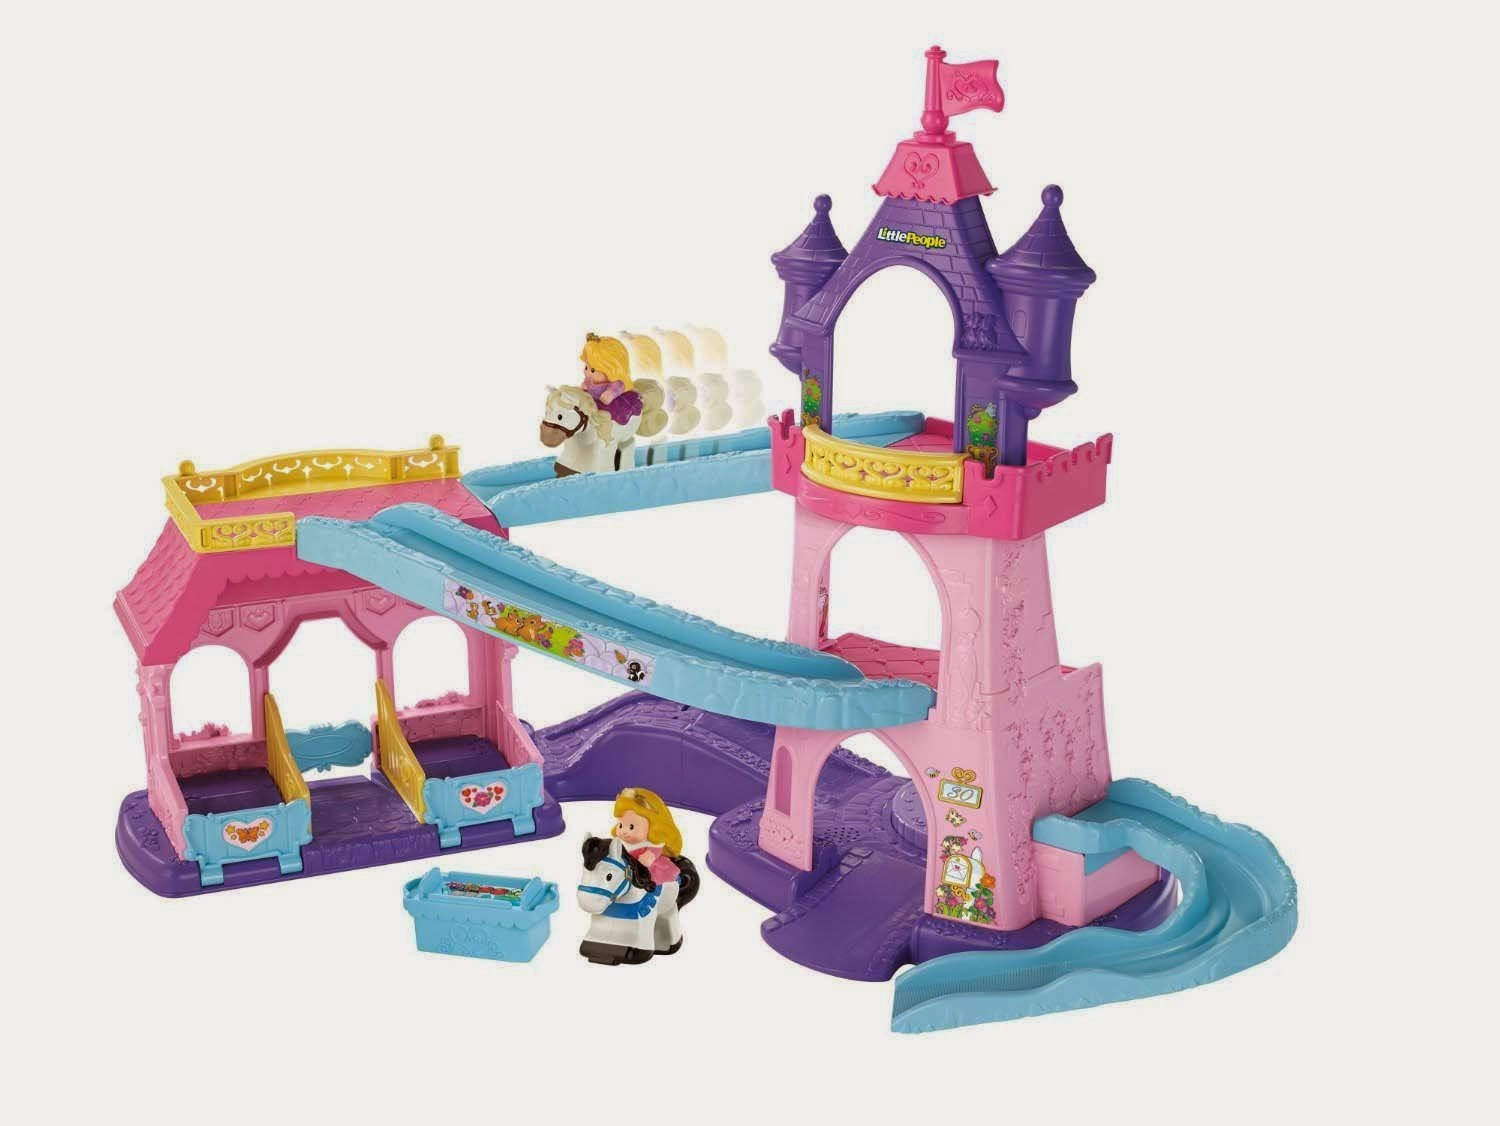 Fisher-Price Little People Disney Princess Klip Klop Stable | Best And Top Toys For Christmas Gifts